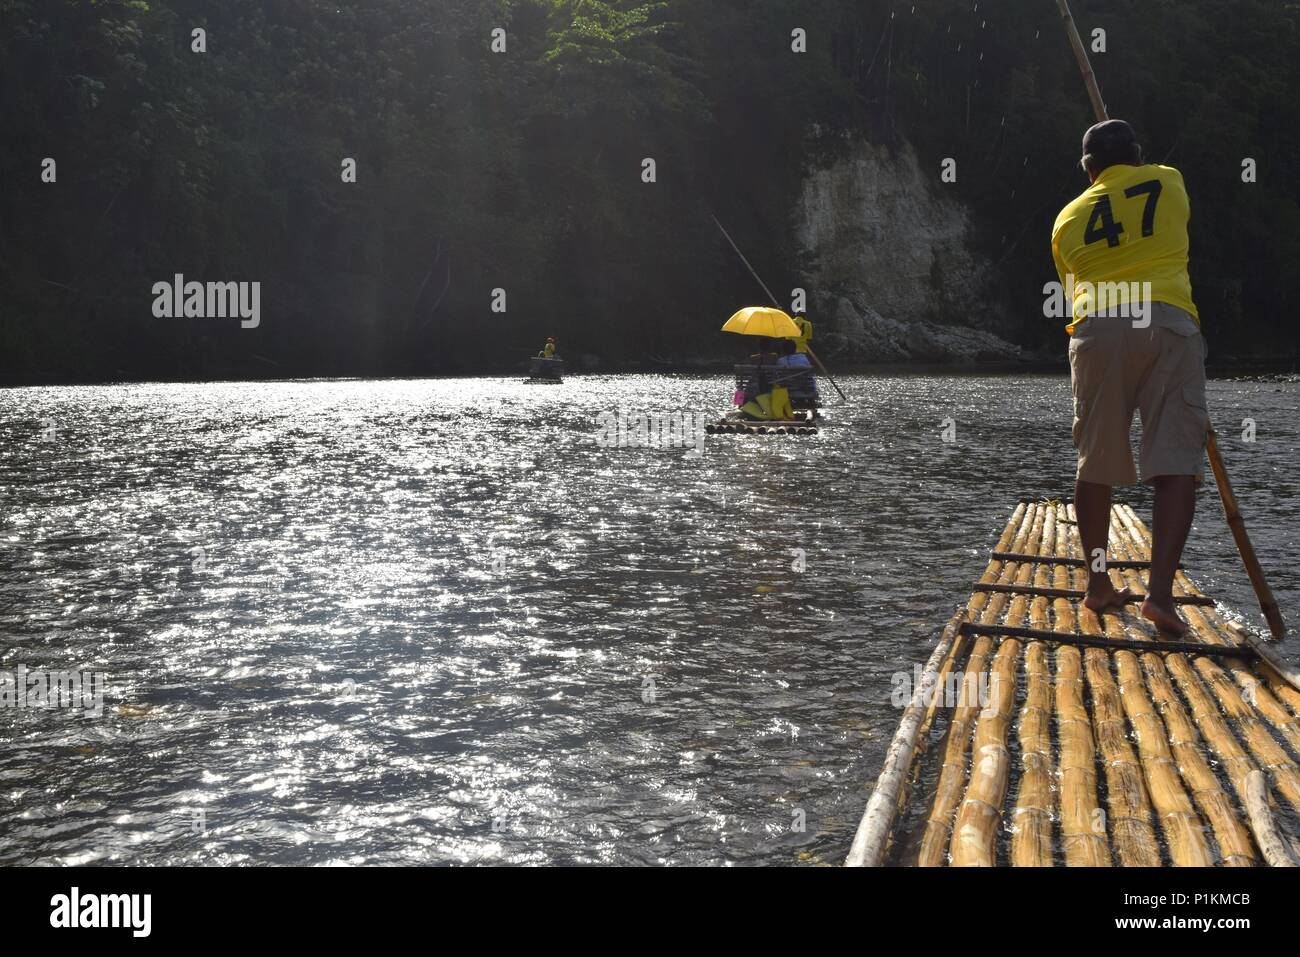 Rio Grande rafters row in sync down the river using hand-made bamboo rafts - Stock Image